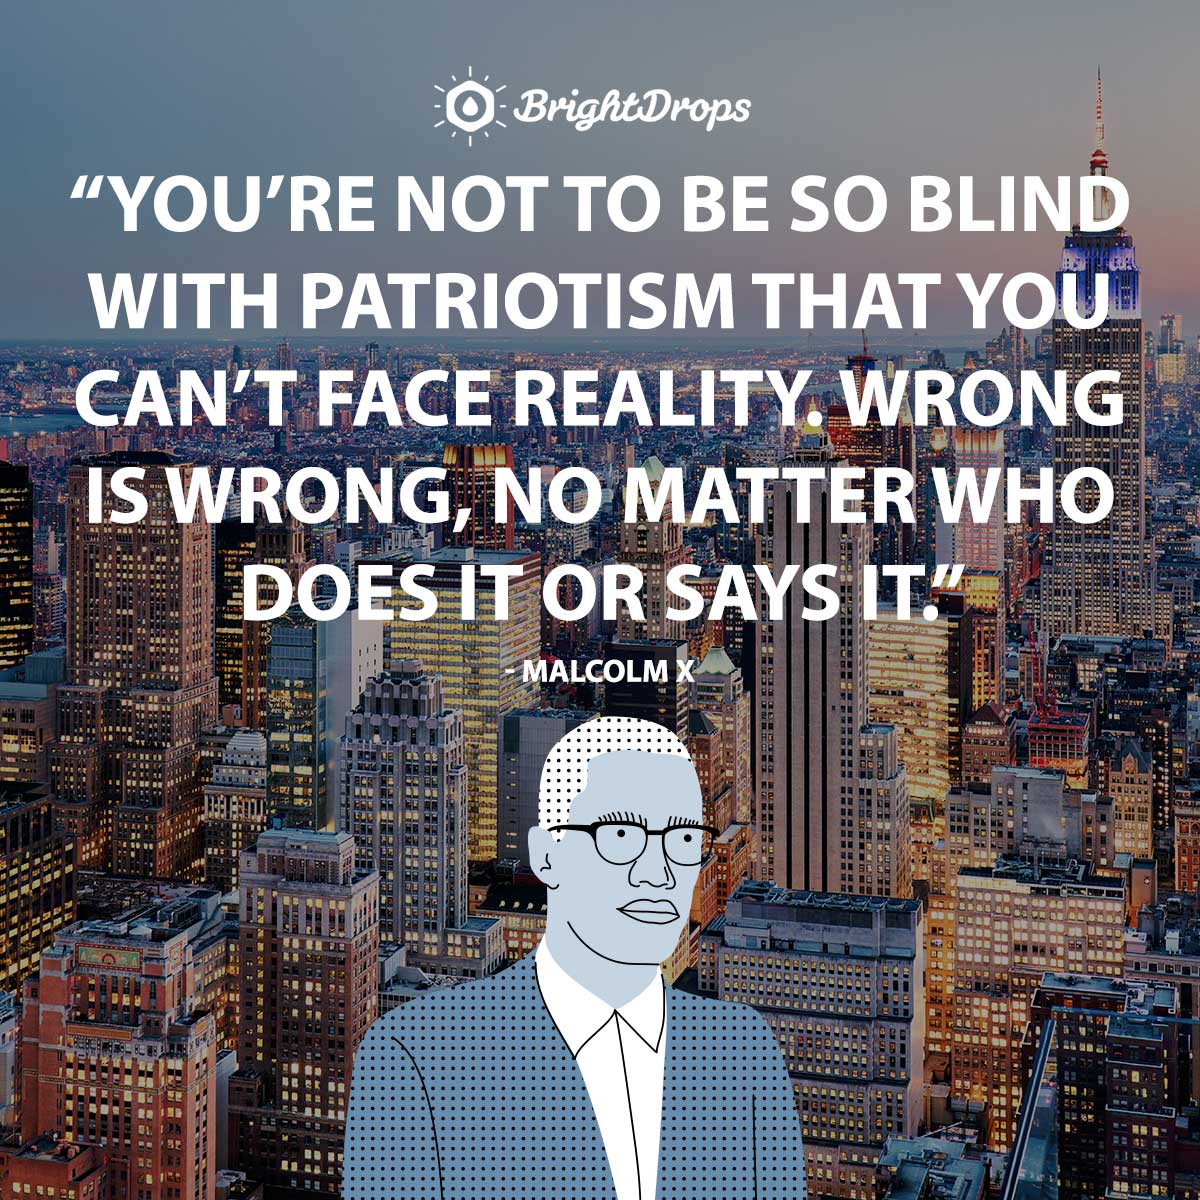 You're not to be so blind with patriotism that you can't face reality. Wrong is wrong, no matter who does it or says it. - Malcolm X